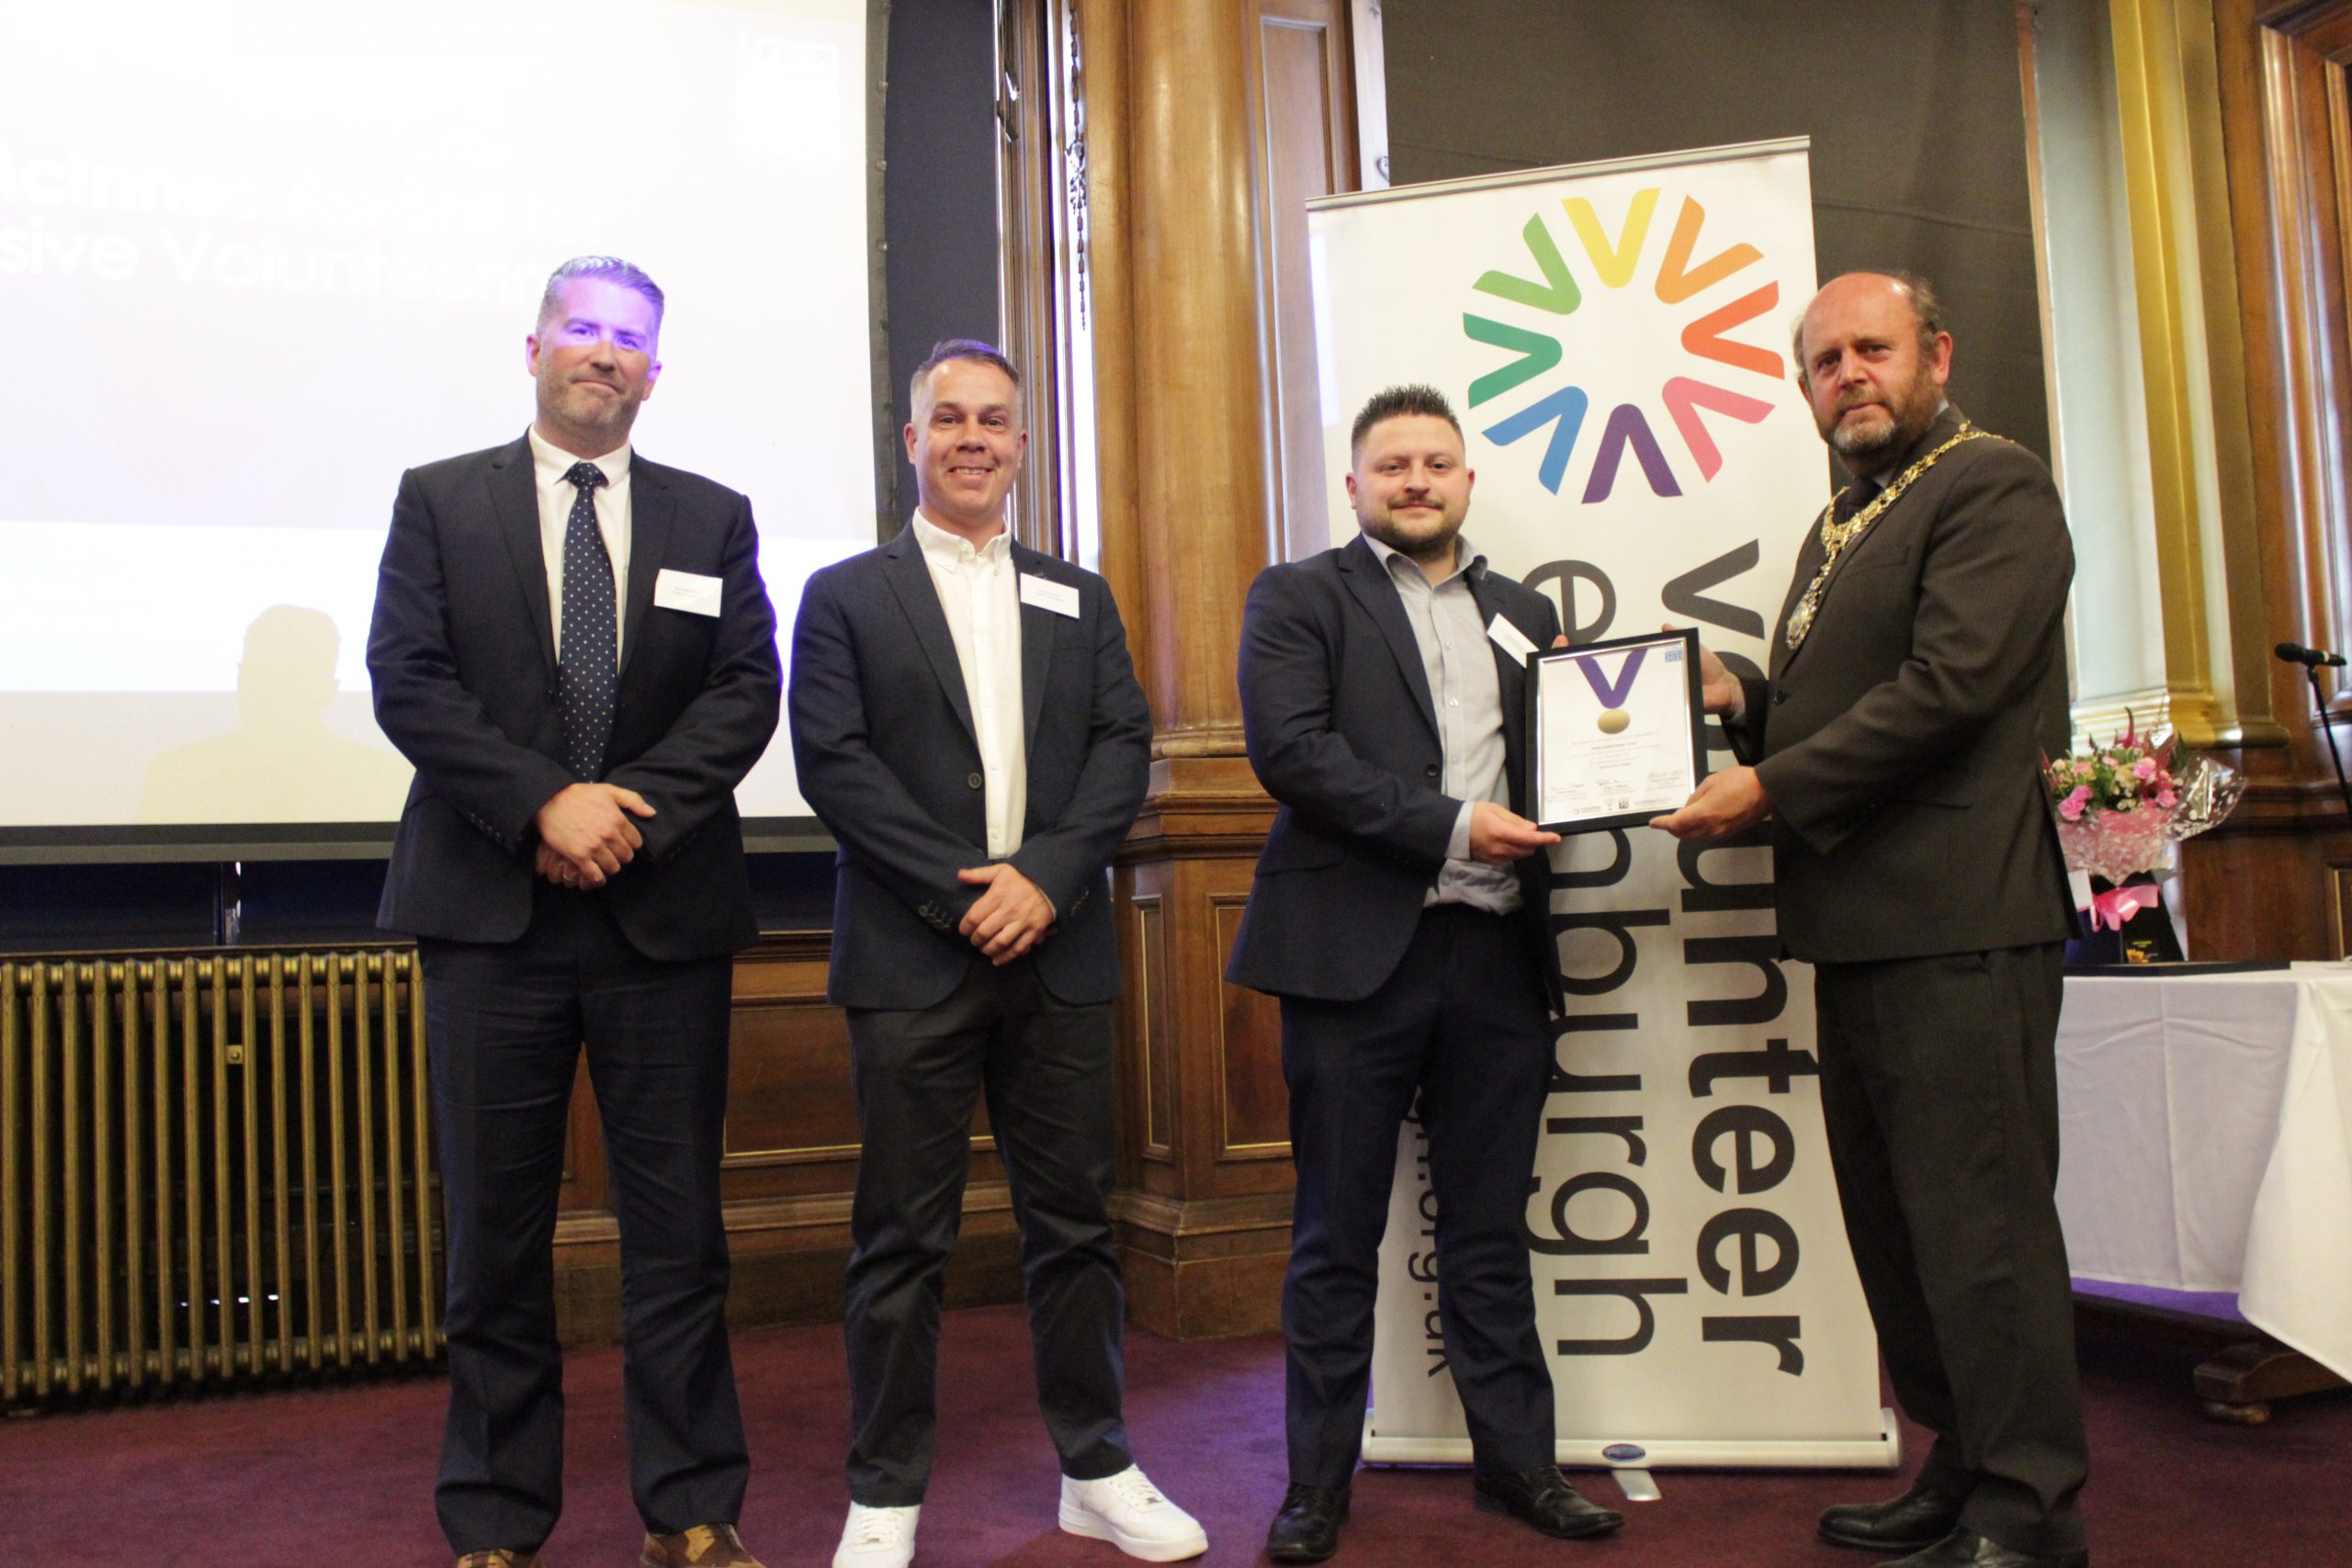 Photo of the Male Befriending Team of Held In Our Hearts who were the recipients of the Ian McInnes Award 2021